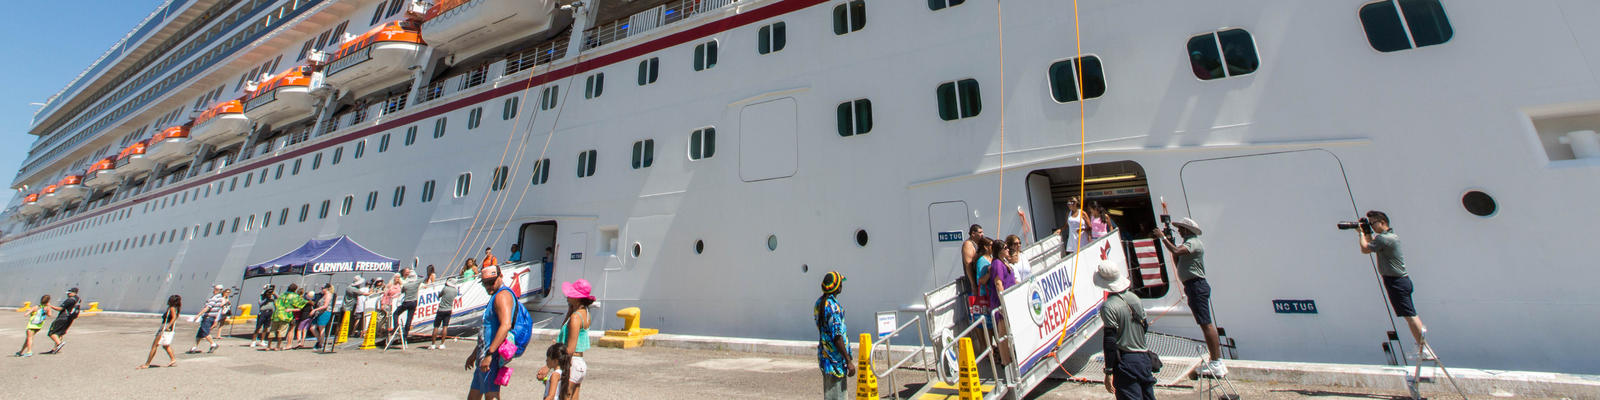 What To Expect On A Cruise Boarding A Cruise Ship